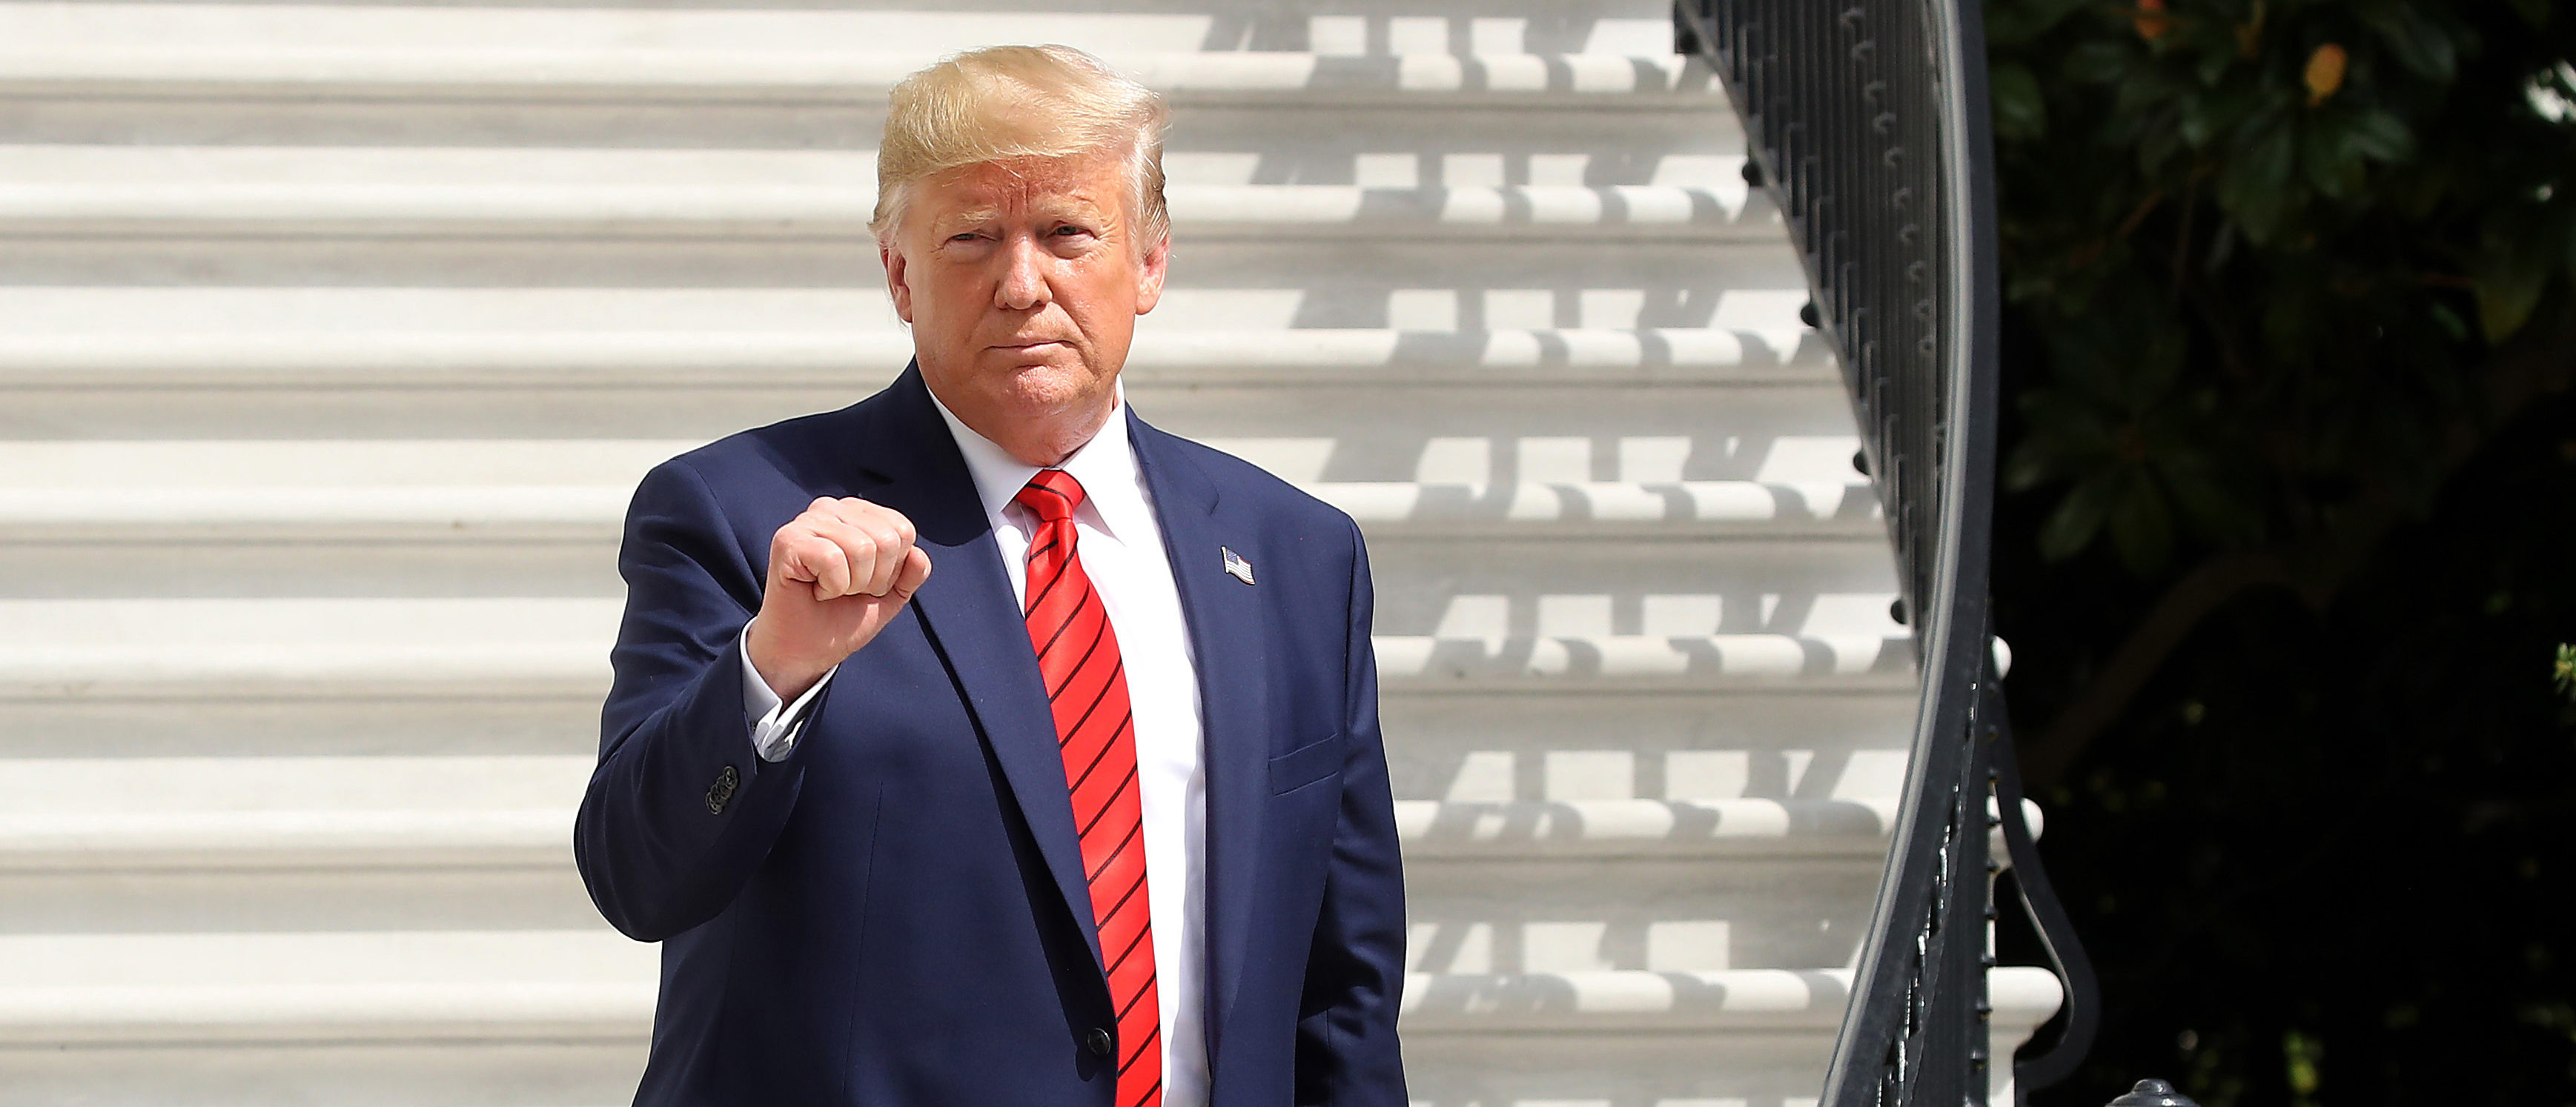 U.S. President Donald Trump gestures as he returns to the White House after attending the United Nations General Assembly on Sept. 26, 2019 in Washington, D.C. (Photo by Mark Wilson/Getty Images)